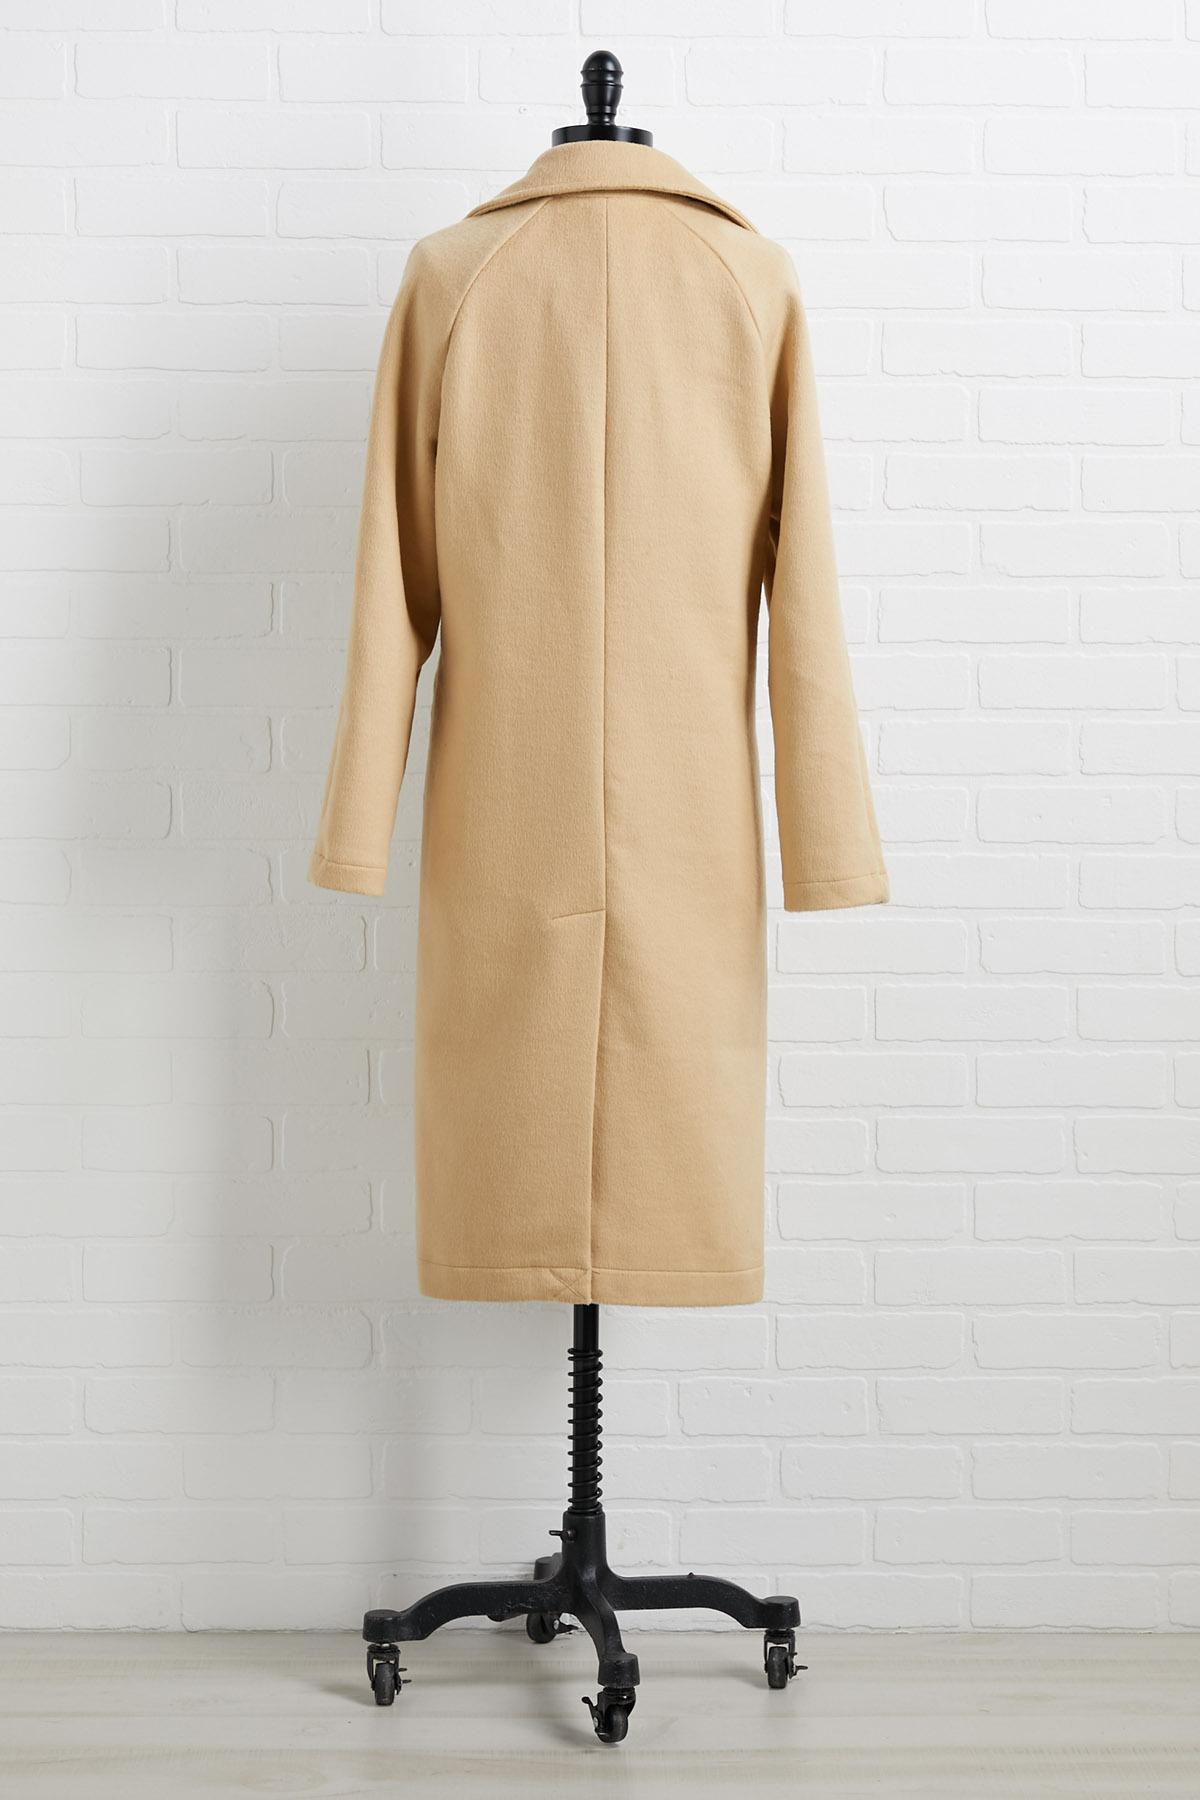 Welcome To New York Coat